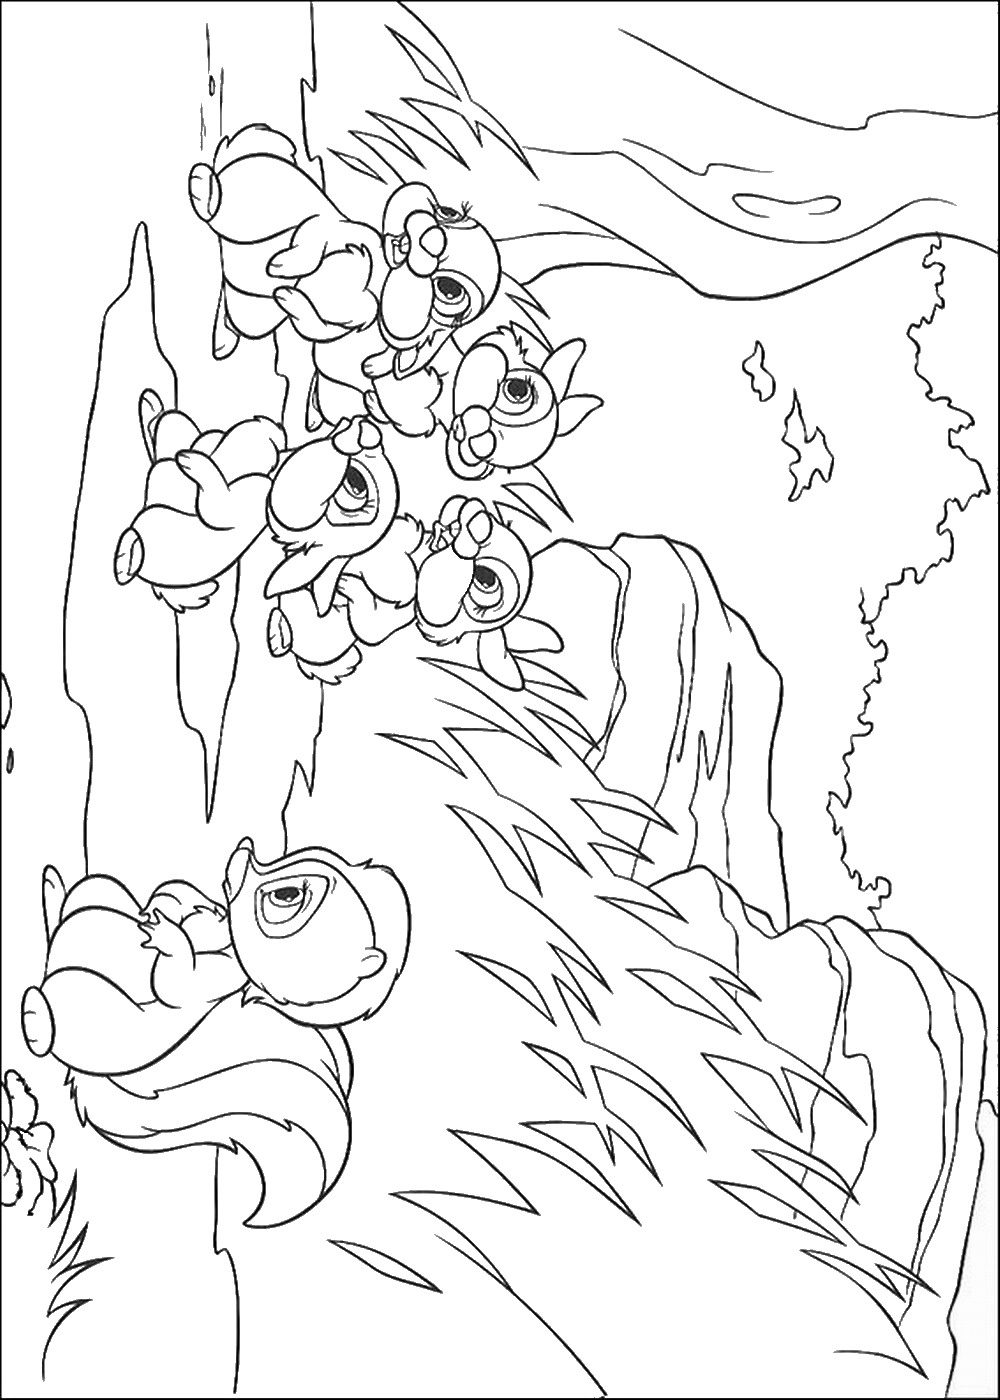 bambi coloring page coloring page of bambi and thumper bambi thumper bambi coloring page